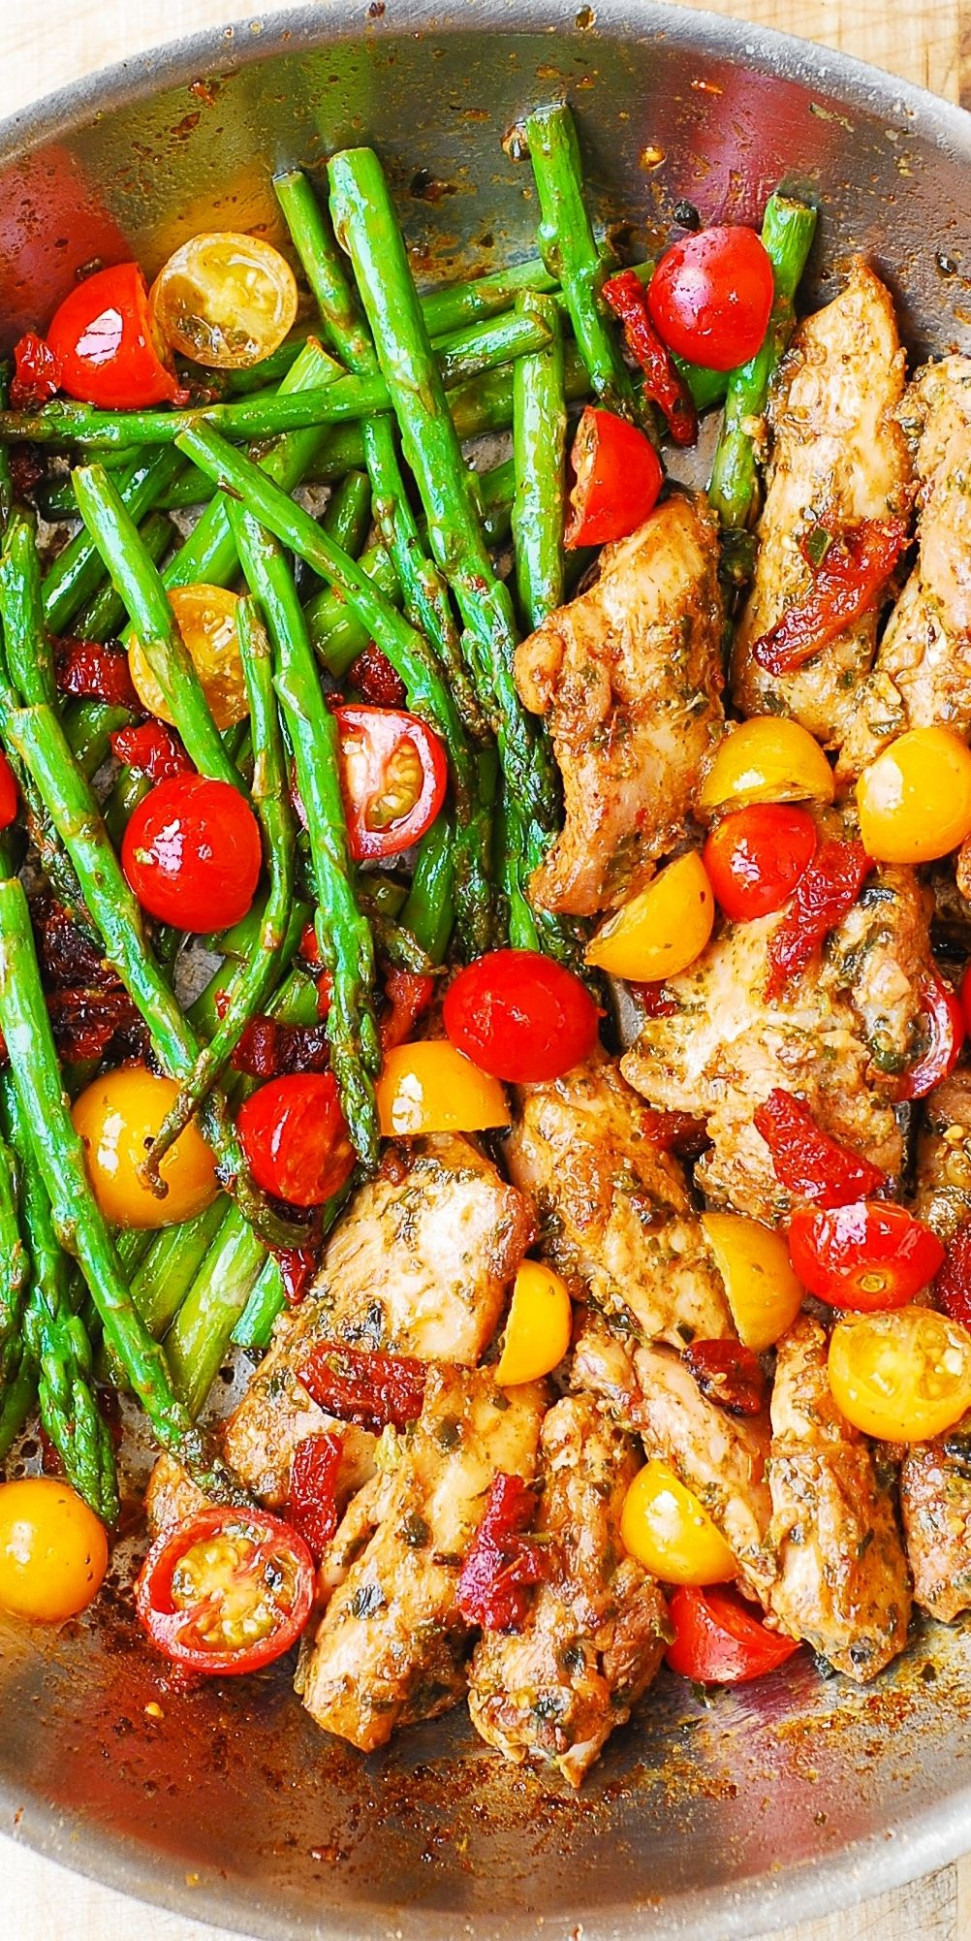 Quick and simple healthy dinner for any day! | Healthy ..